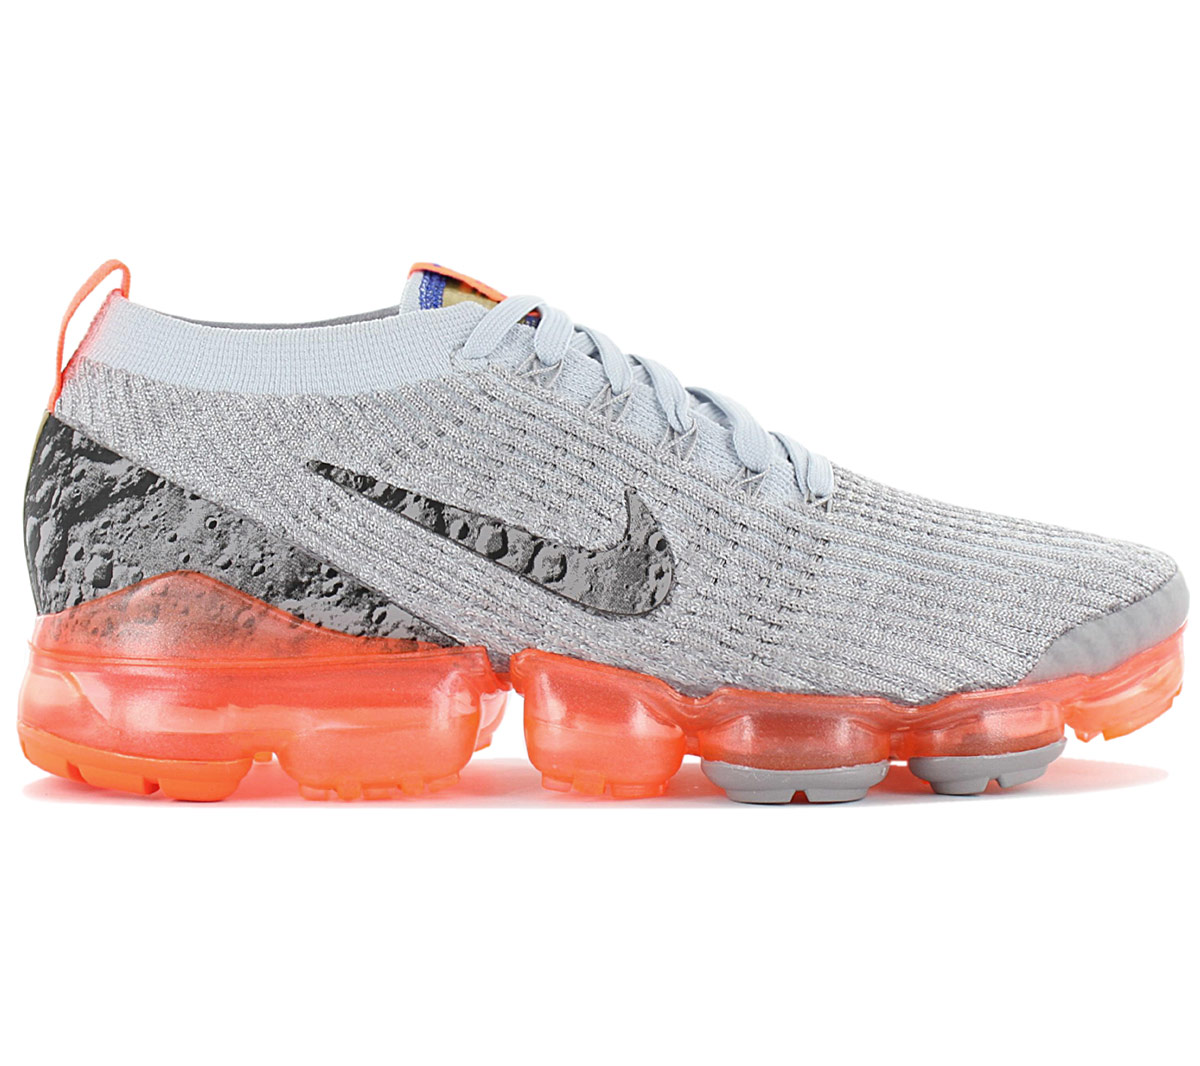 Details about Nike Air Vapormax Flyknit 3 Men's Sneaker AJ6900 001 Grey Shoes Trainers New